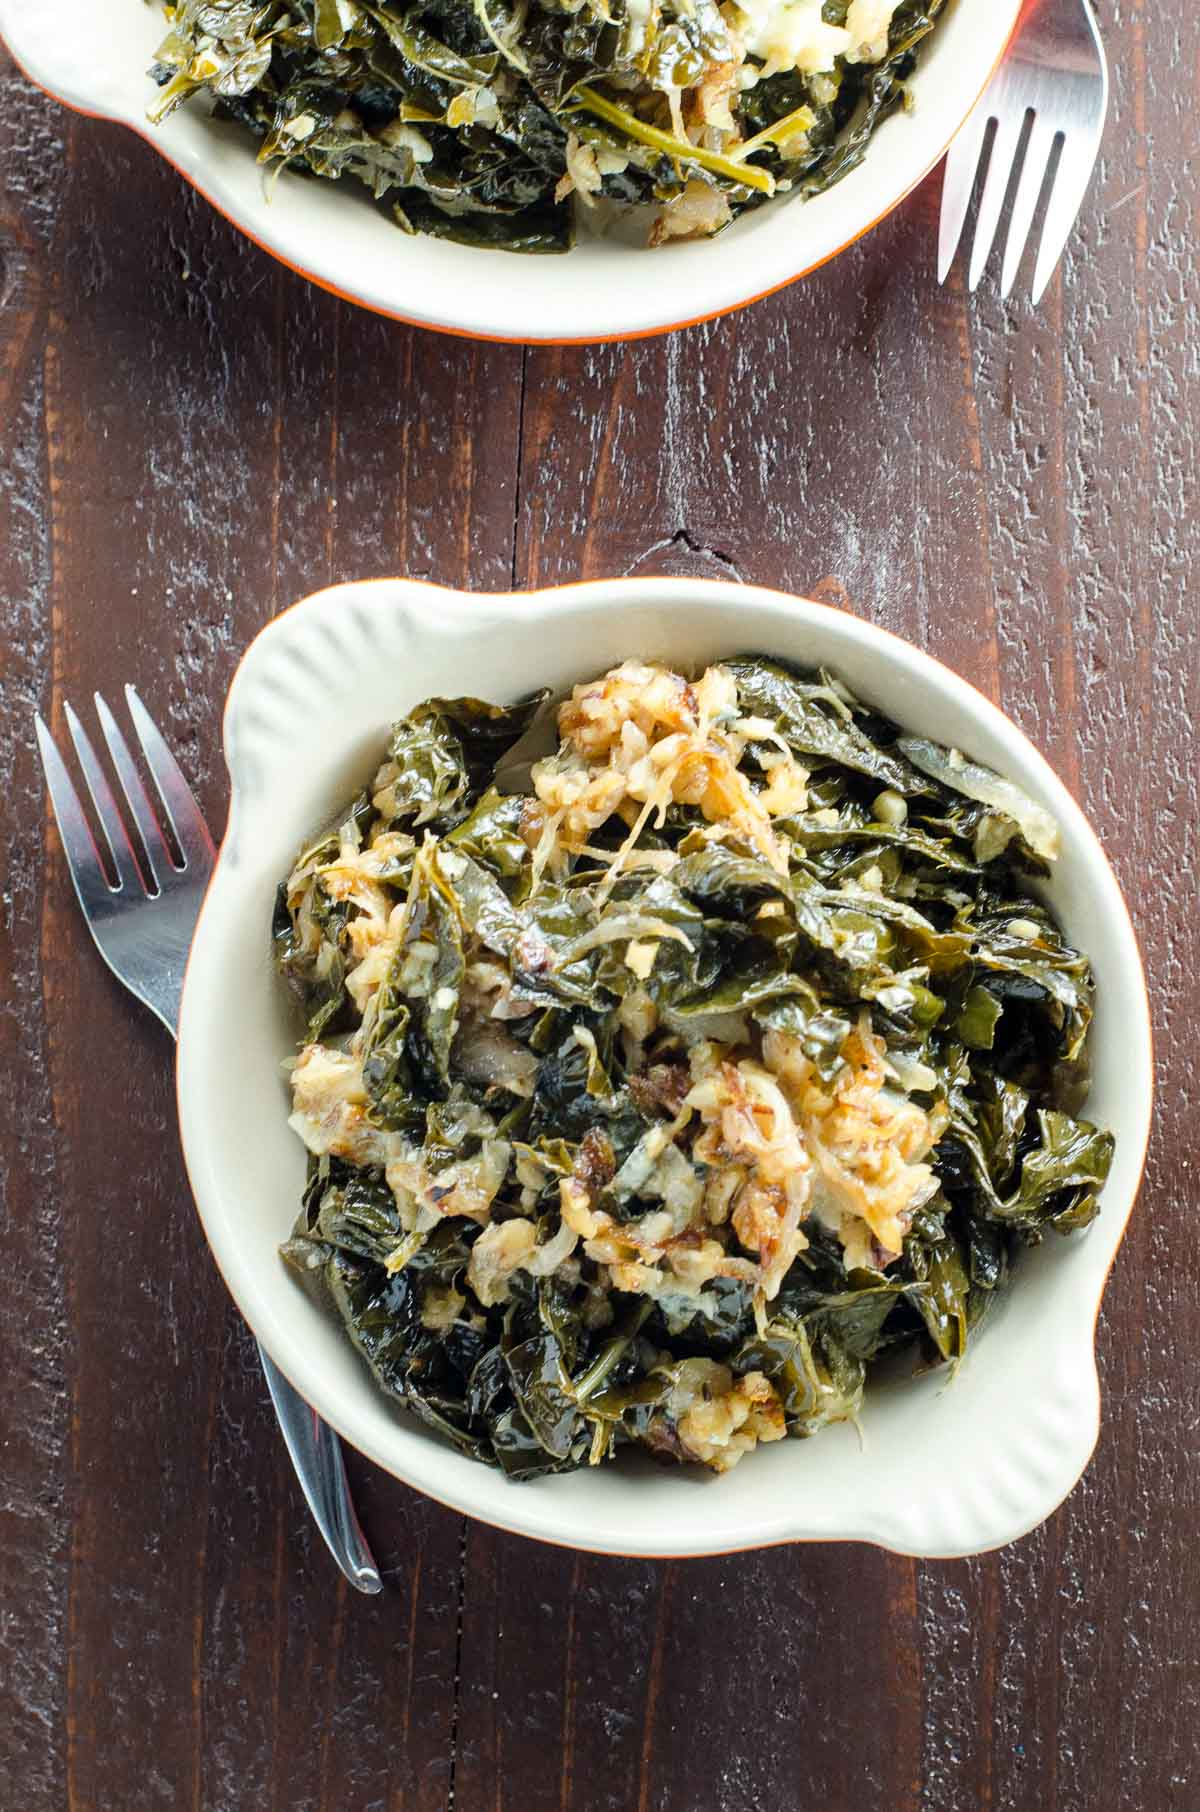 braised kale with caramelized onions, walnuts, and blue cheese in a gratin dish with a fork